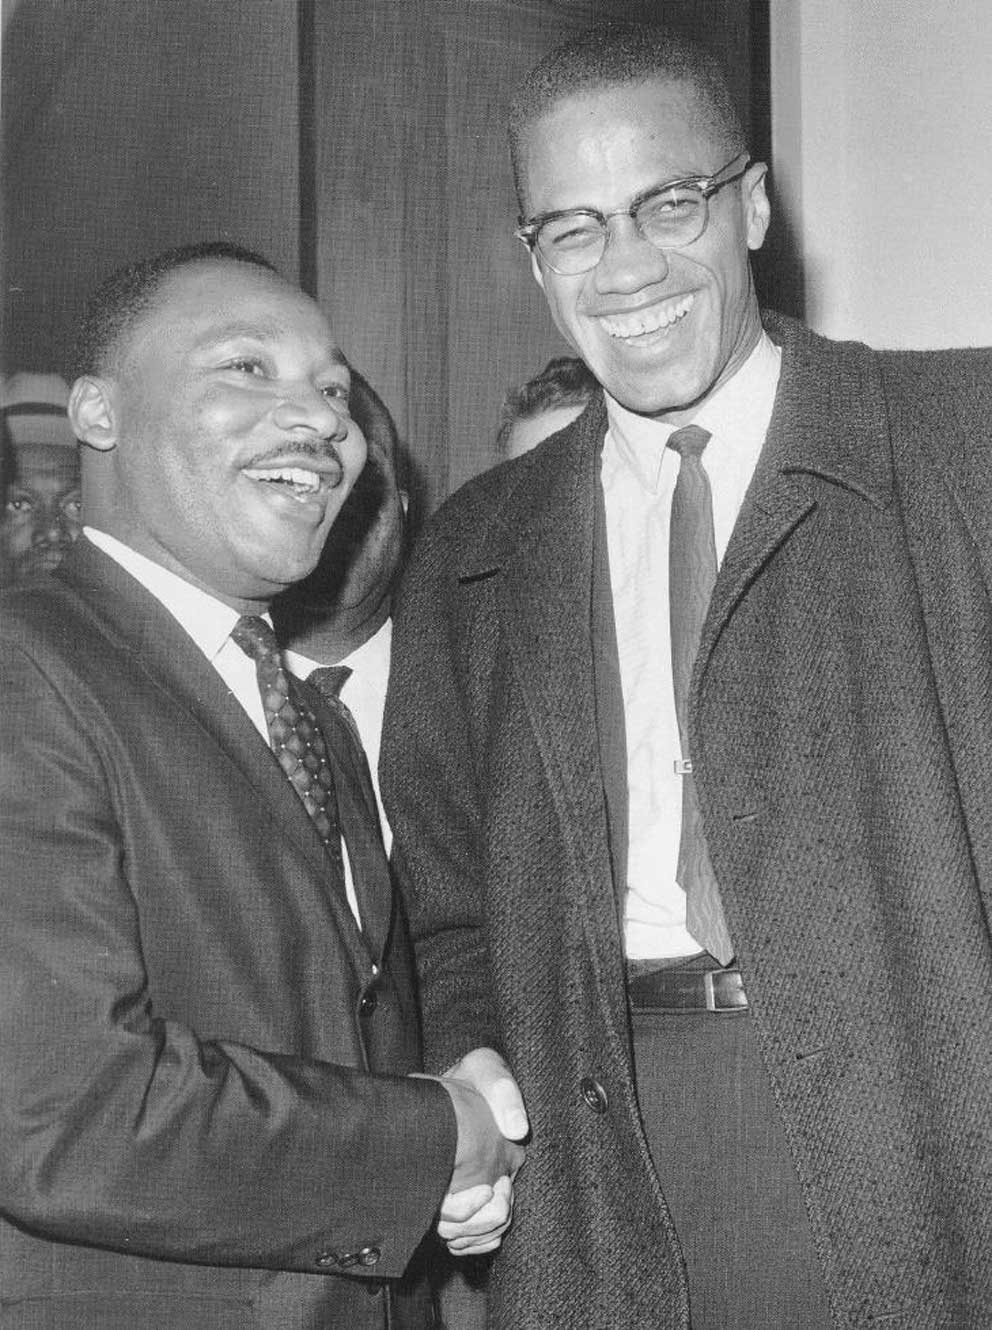 a comparison of the aims and methods of martin luther king and malcolm x in the united states Martin luther king jr and malcolm x were both respected ministers and established leaders of the african-american people although most whites often say that they were like oil and water, these two men, how different they may have seemed to be, had the same goal: they wanted to end exploitation, discrimination and racism.